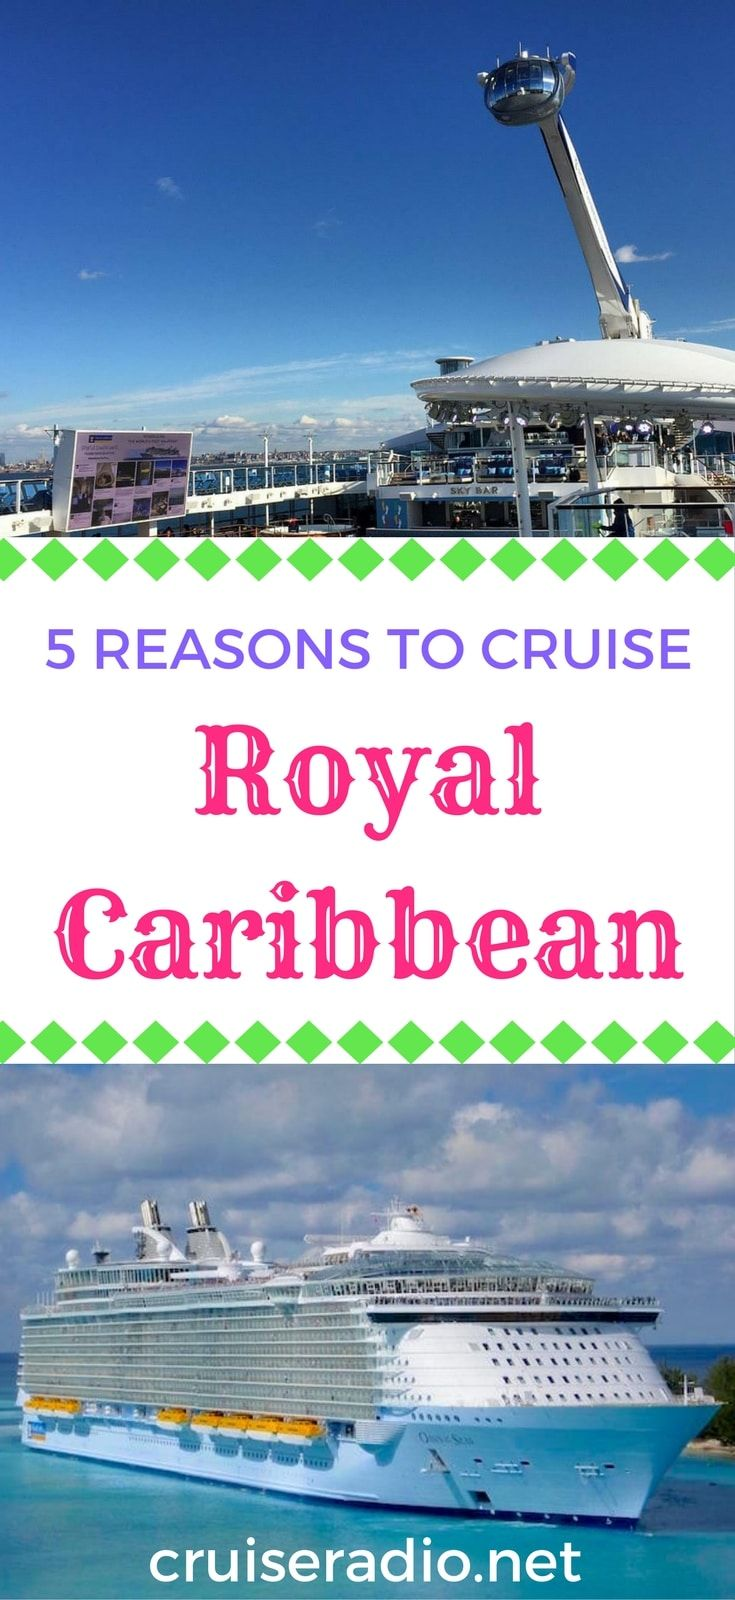 33 Best Images About Royal Caribbean On Pinterest  Cruise Vacation Royal Ca